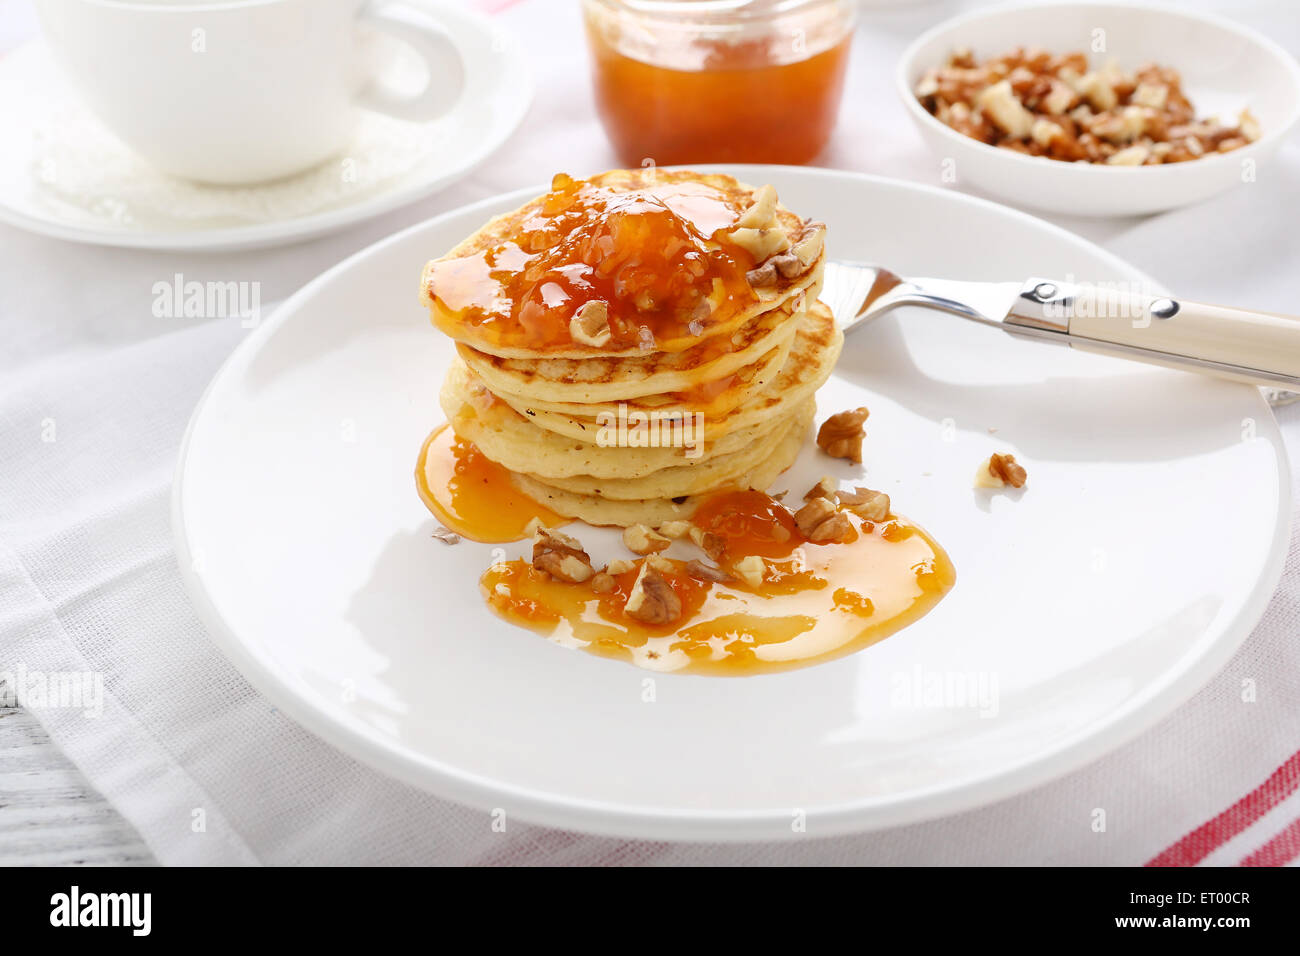 Stack of pancakes with apricots, dessert - Stock Image